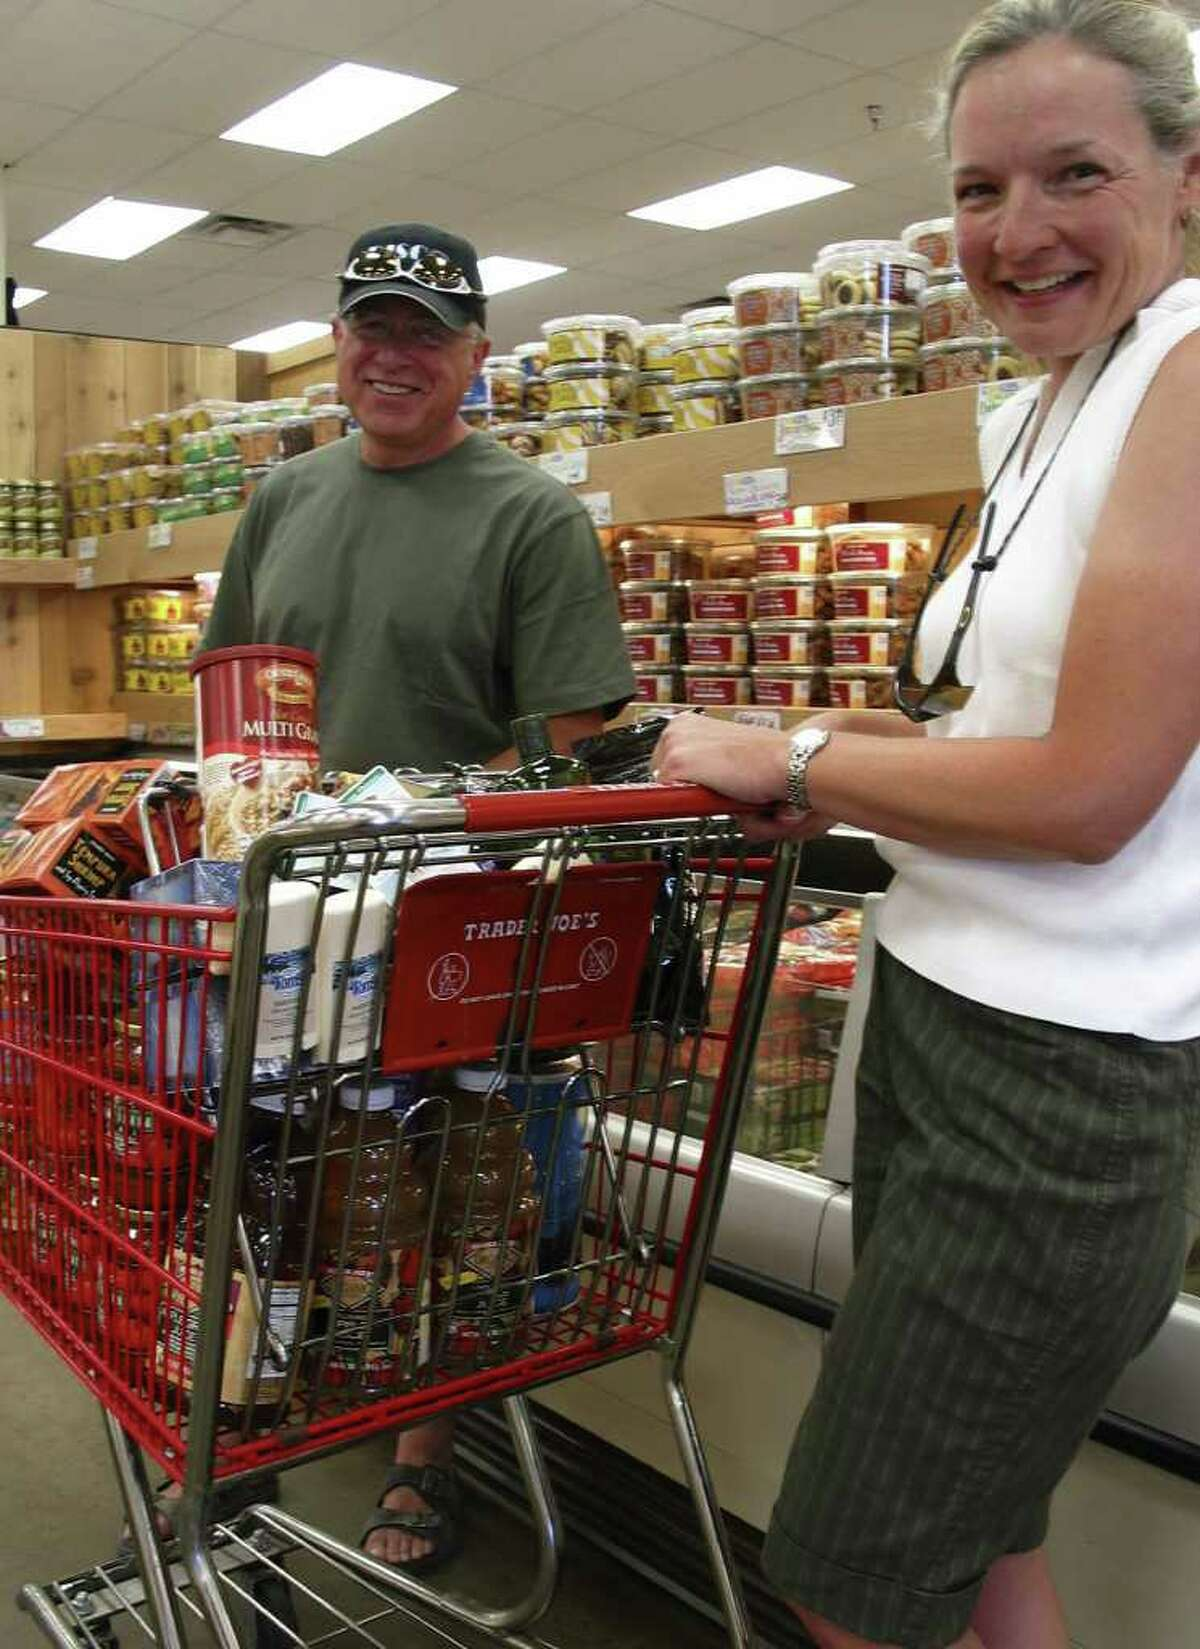 Lisa, right, and Steve Mackey, of Durango, Colorado, pictured at the Trader Joe's grocery store in Santa Fe, New Mexico, brought their RV to stock up on goods.